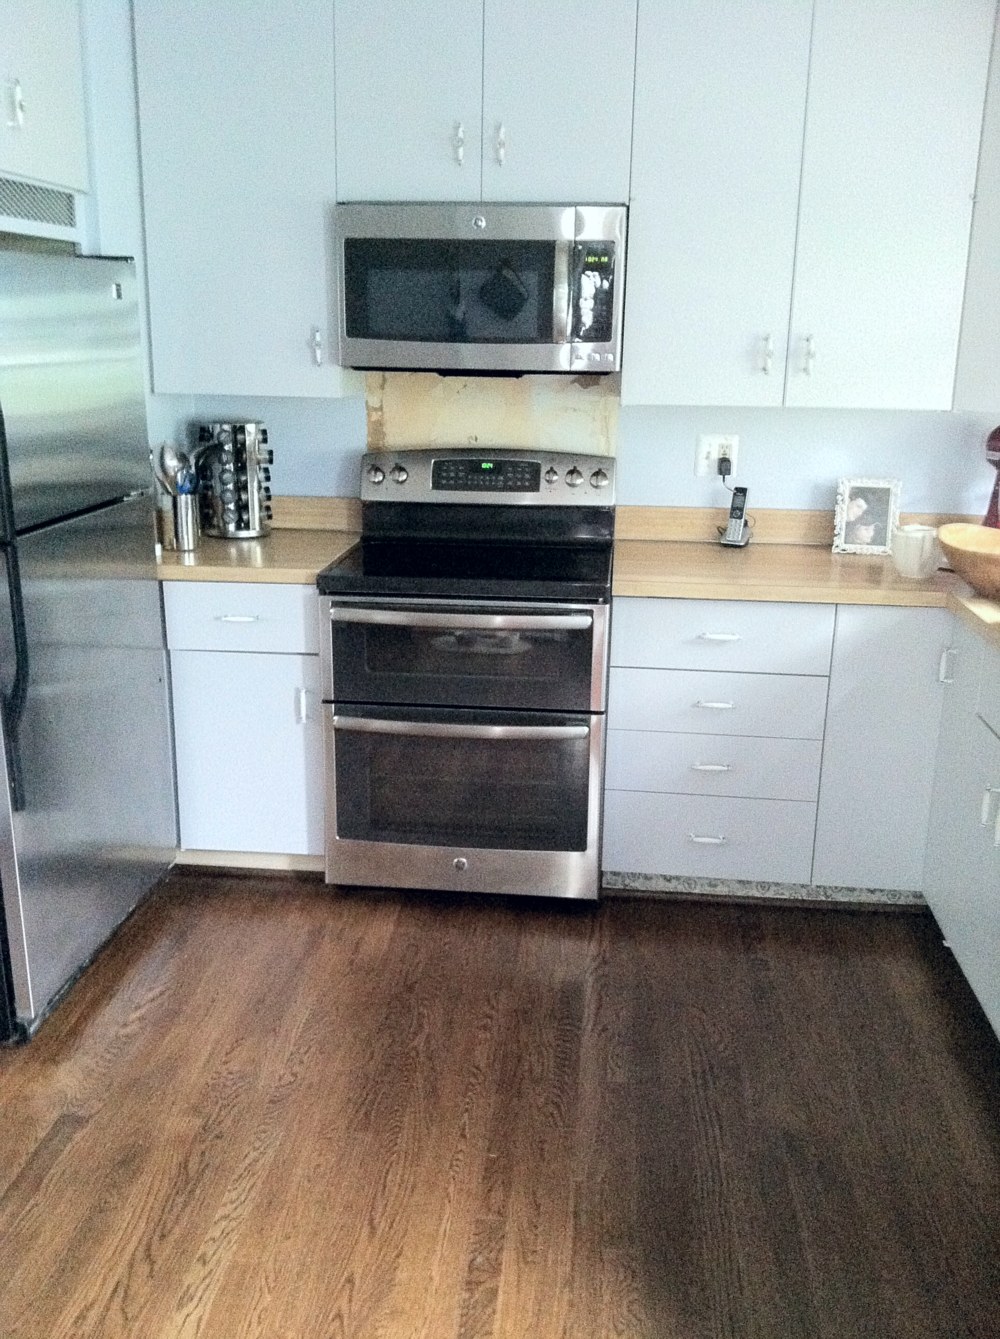 We replaced the beige appliances with stainless steel! When we removed the beige appliances, we noticed some amazing 1970's wallpaper lurking. Of course, we removed the floral eyesore, but was left with an even bigger eyesore.